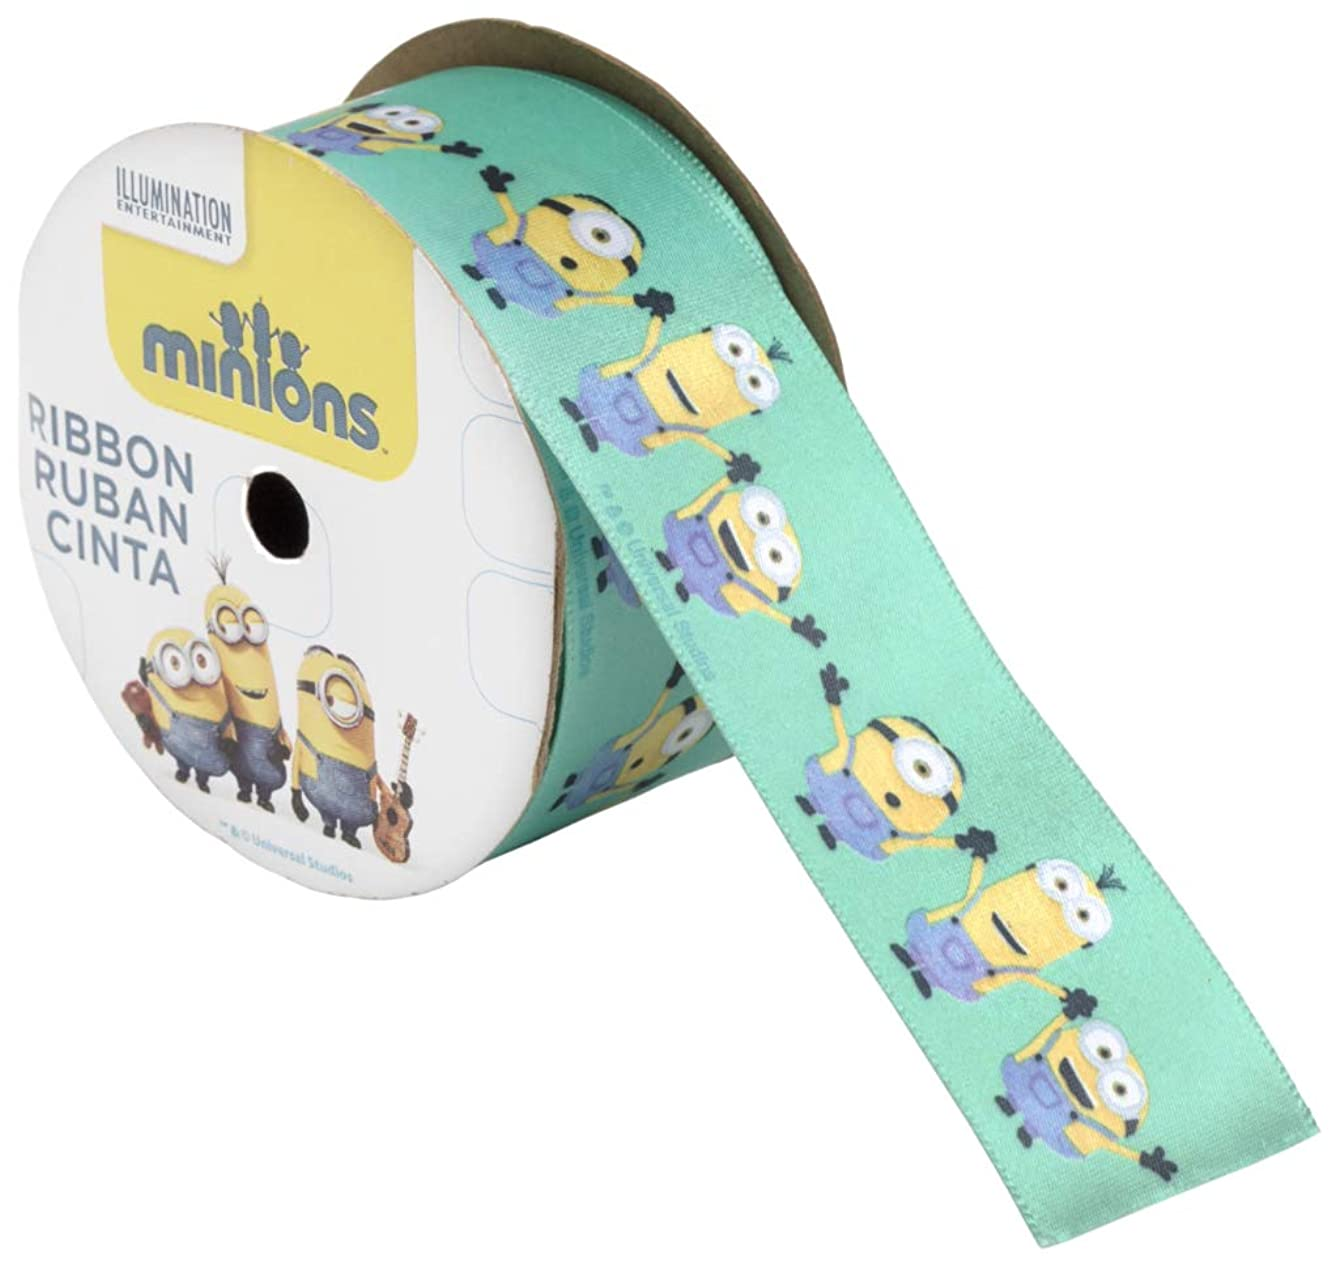 OFFRAY Ribbon Minions 1 1/2 INCHES X 9 Feet